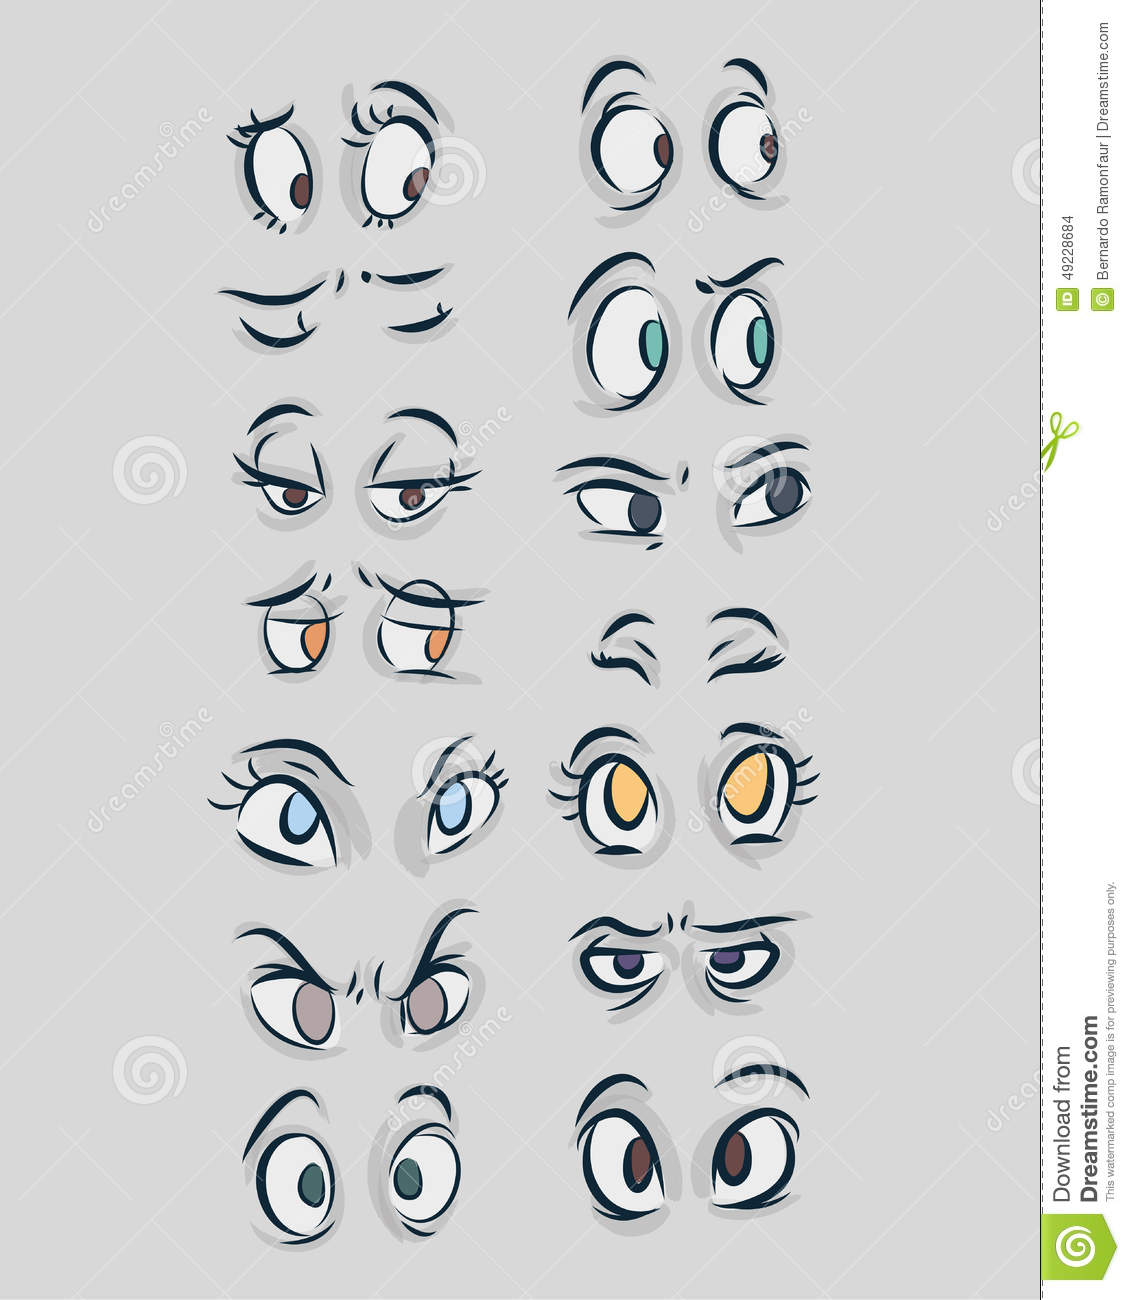 This is a graphic of Epic Different Types Of Eyes Drawing